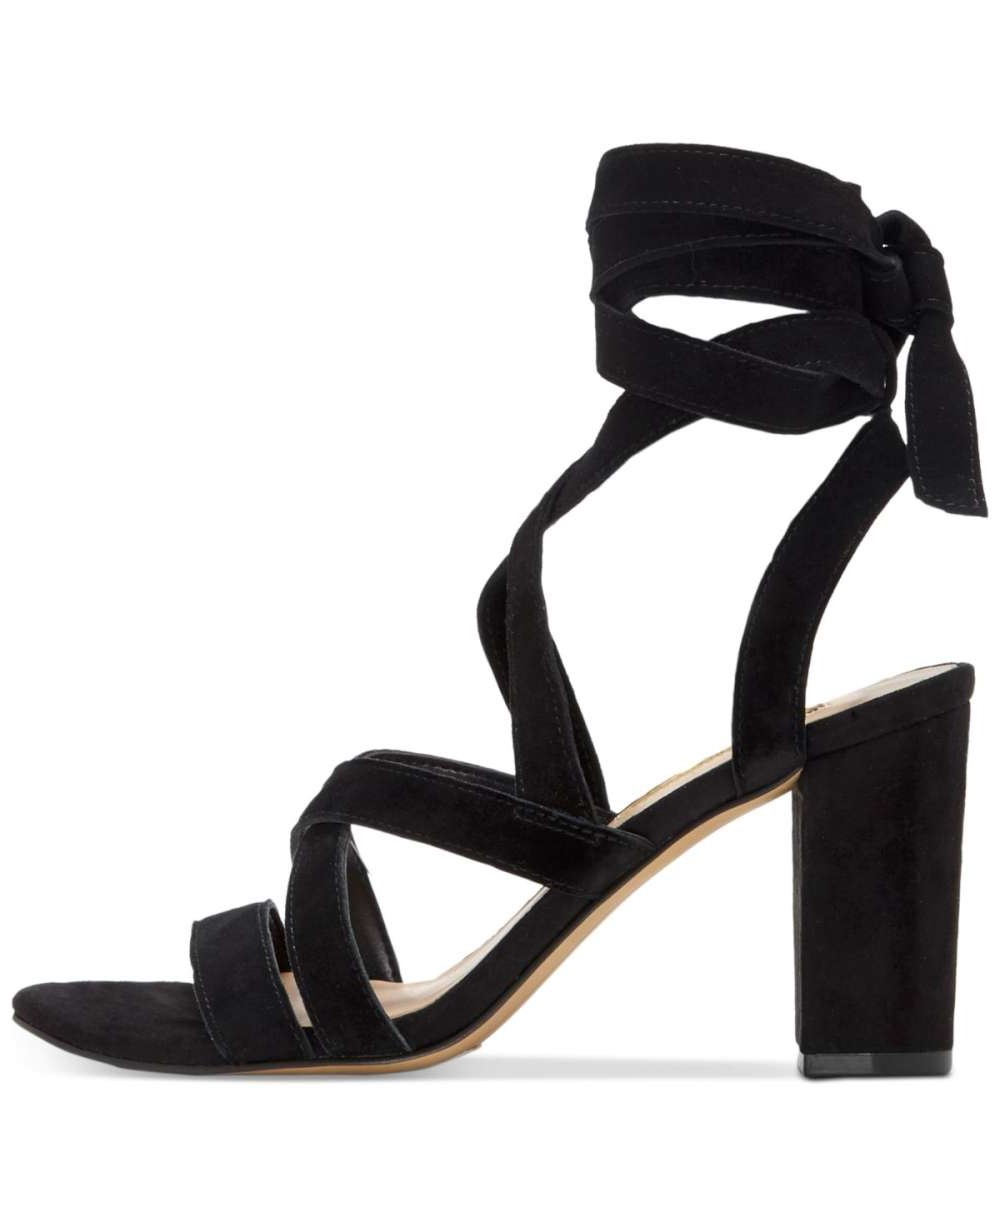 INC International Concepts Womens Kailey Leather Open Toe Heeled Sandals Black Suede Size 7.5 US